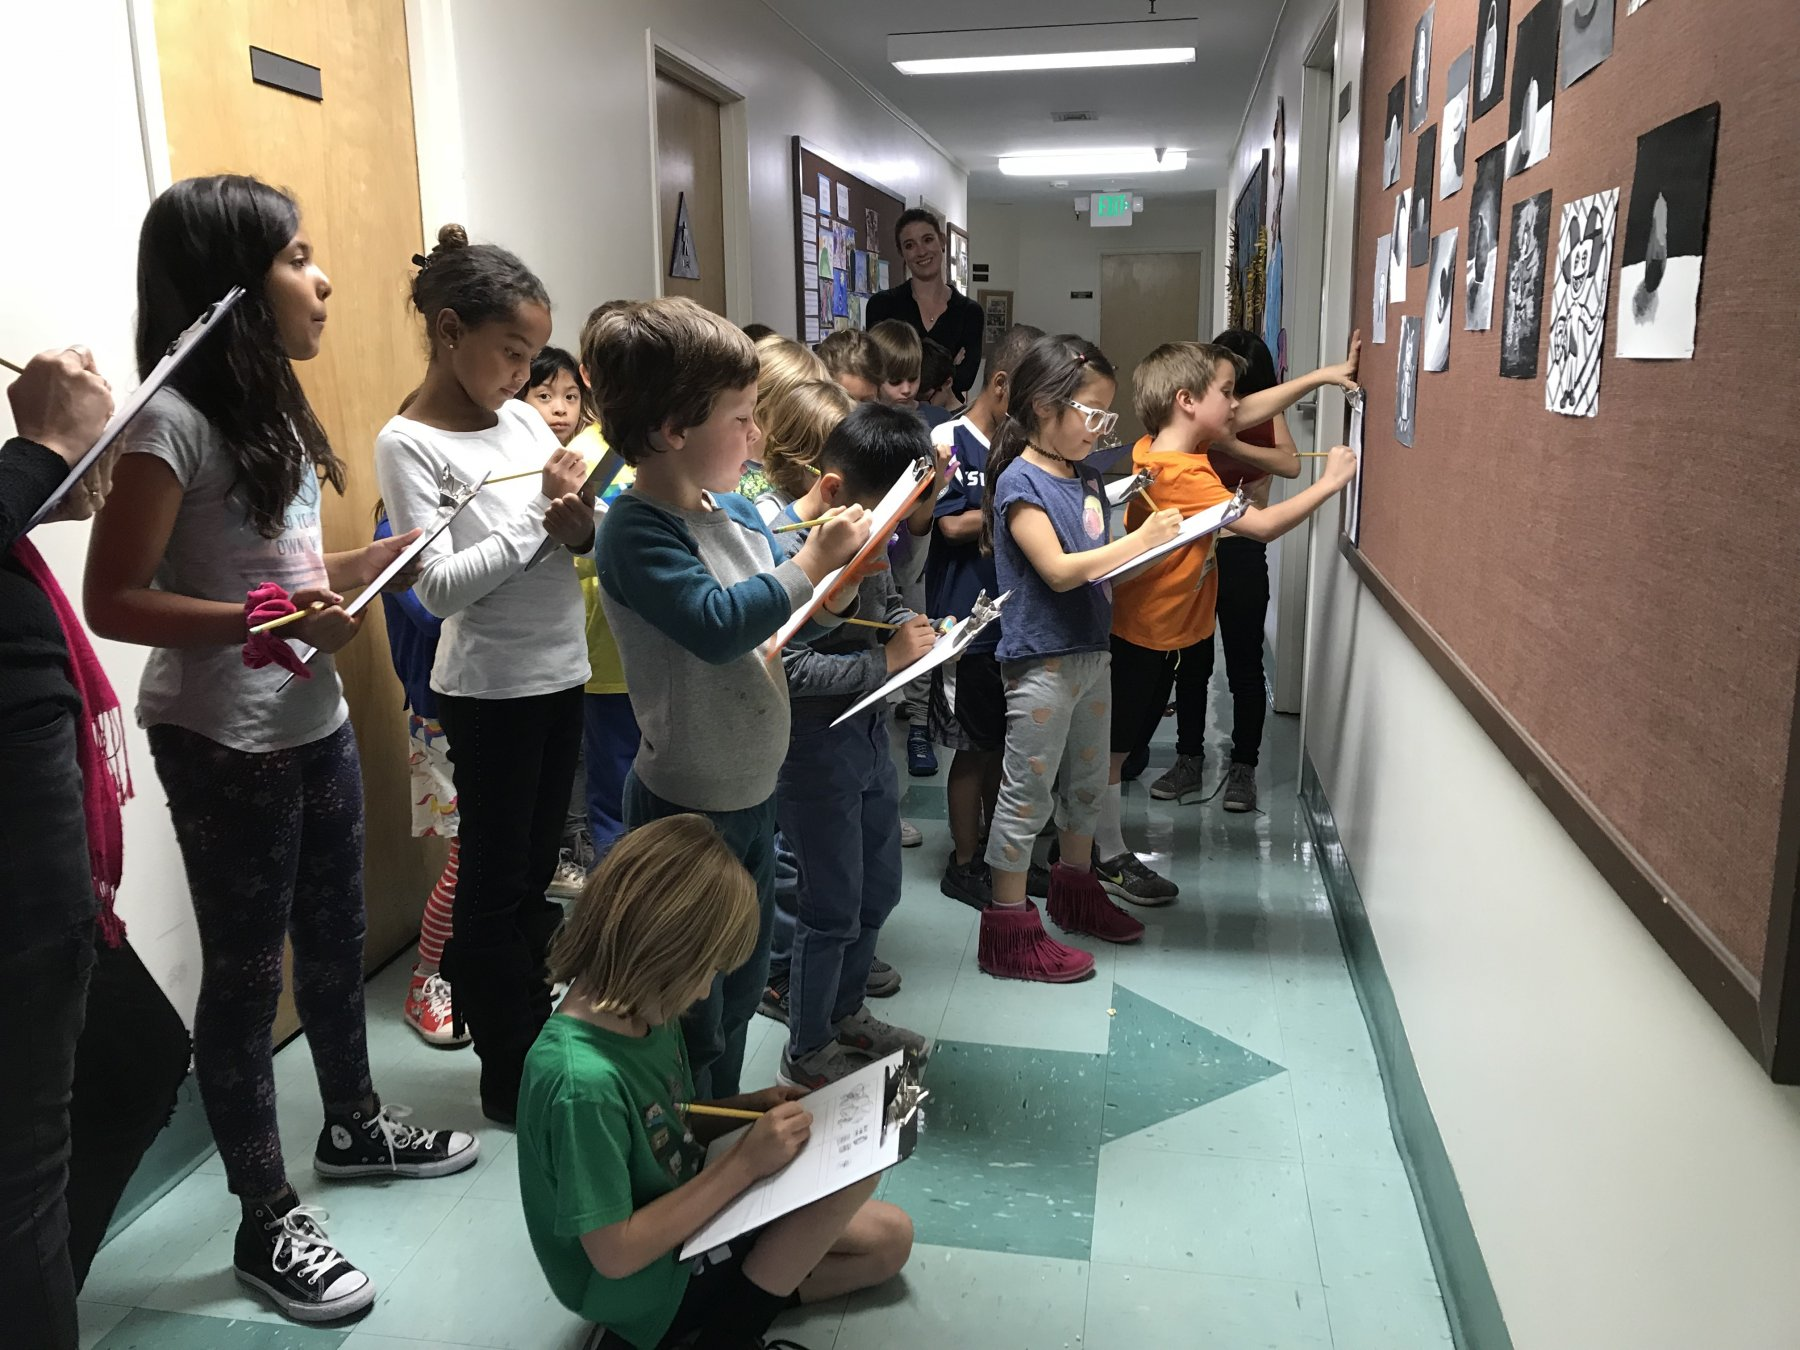 ES Studying art on walls in hallway